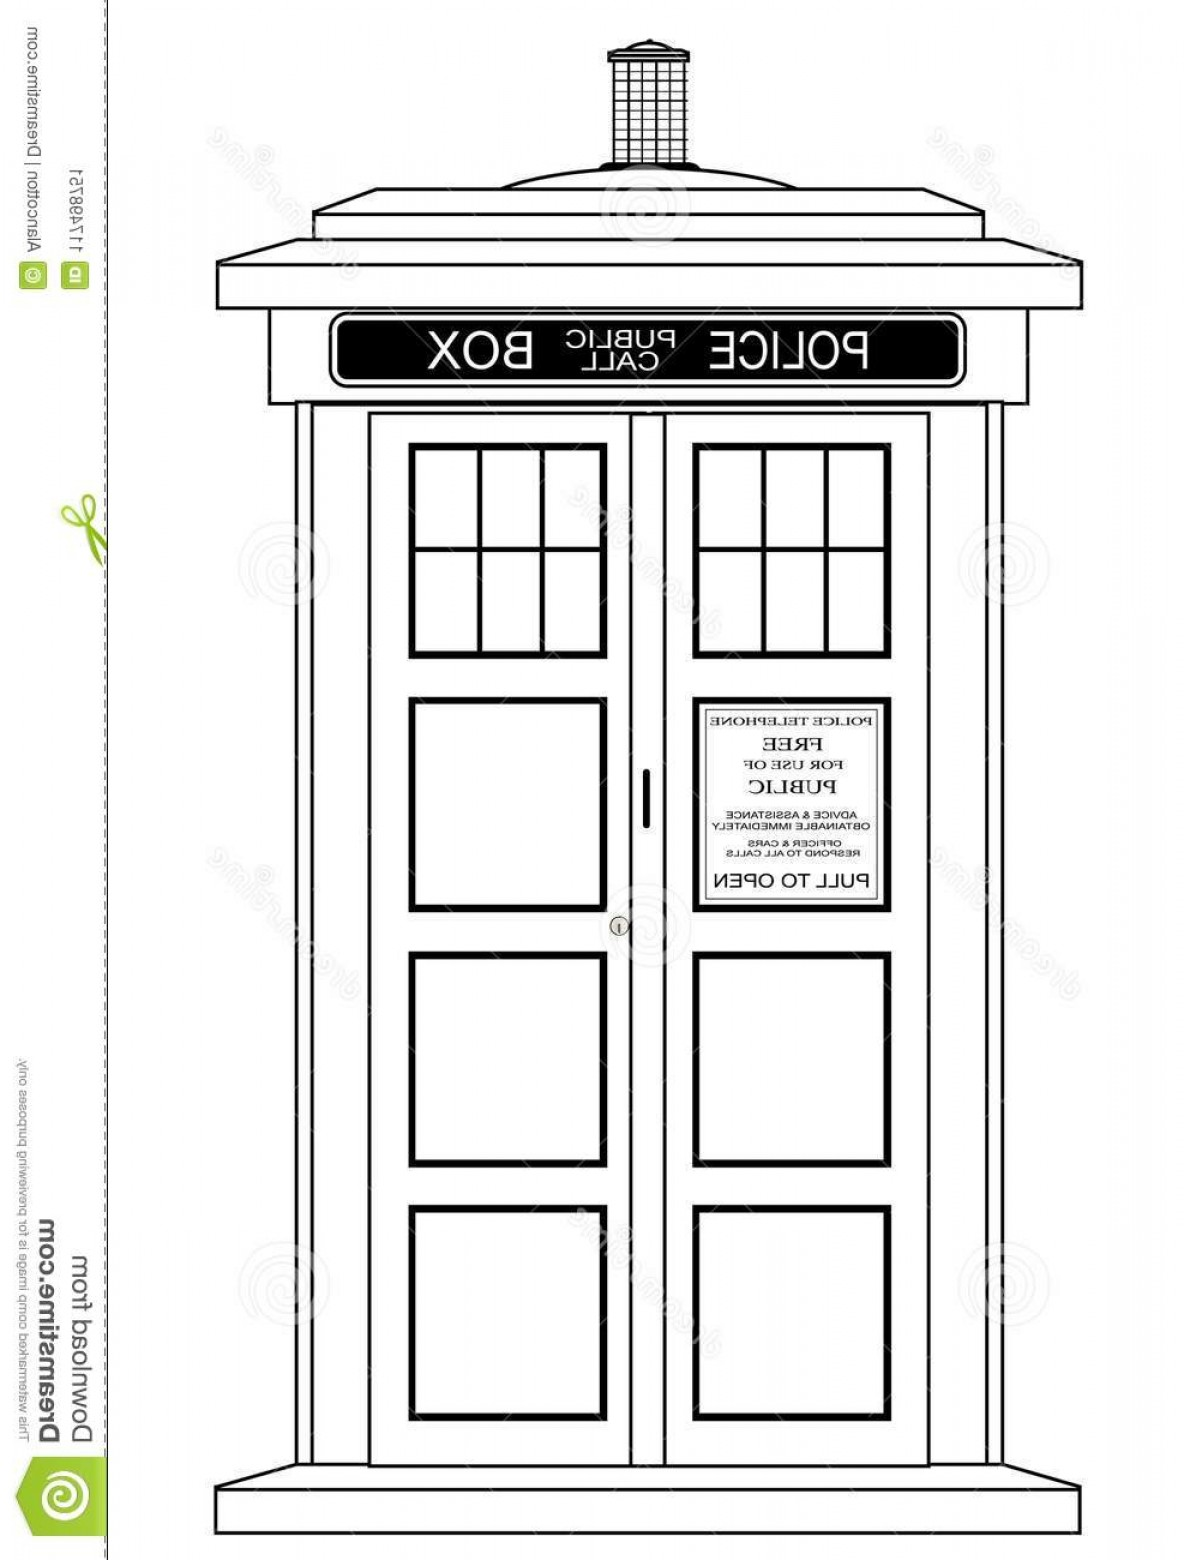 Vector Police Box: Typical British Police Box Isolated Over White Background Old Fashioned British Police Box Image